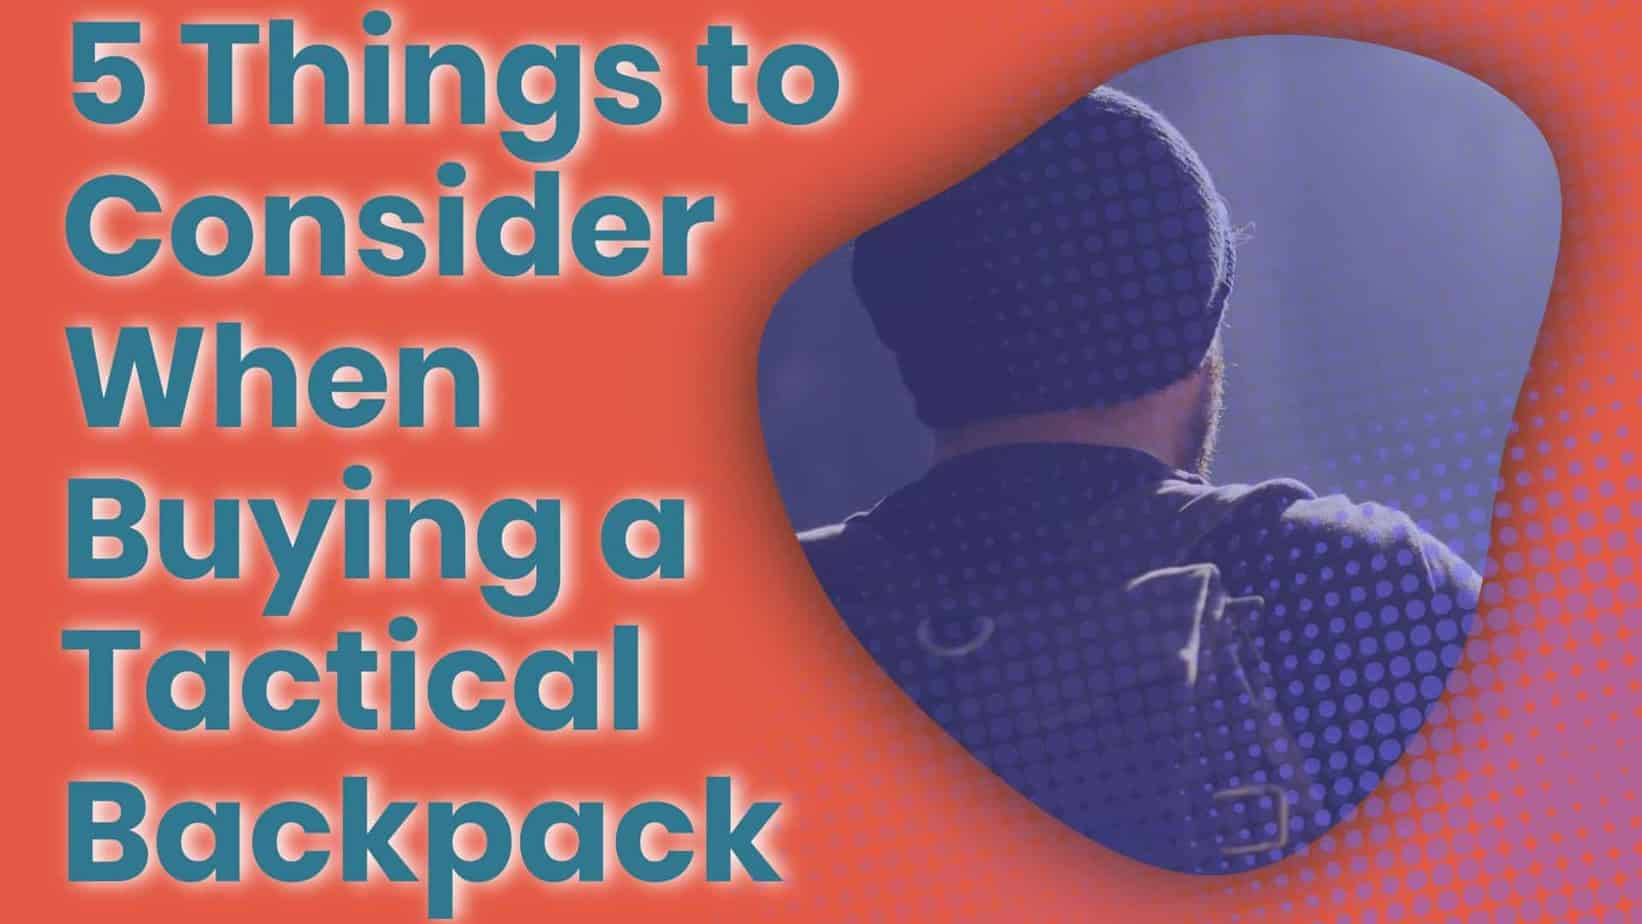 5 Things to Consider When Buying a Tactical Backpack